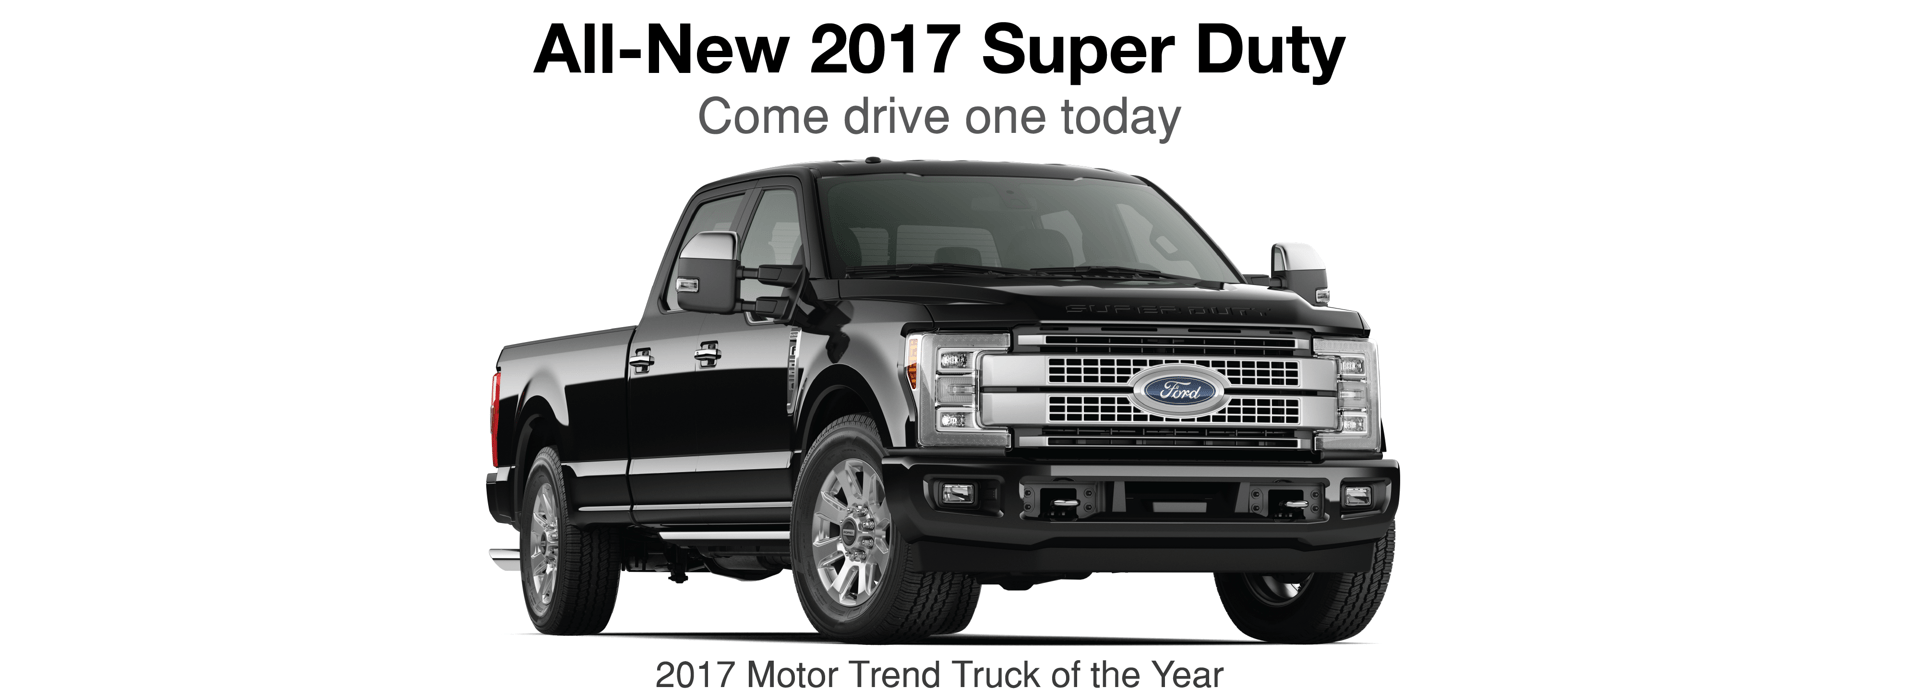 The all-new 2017 Ford Super Duty